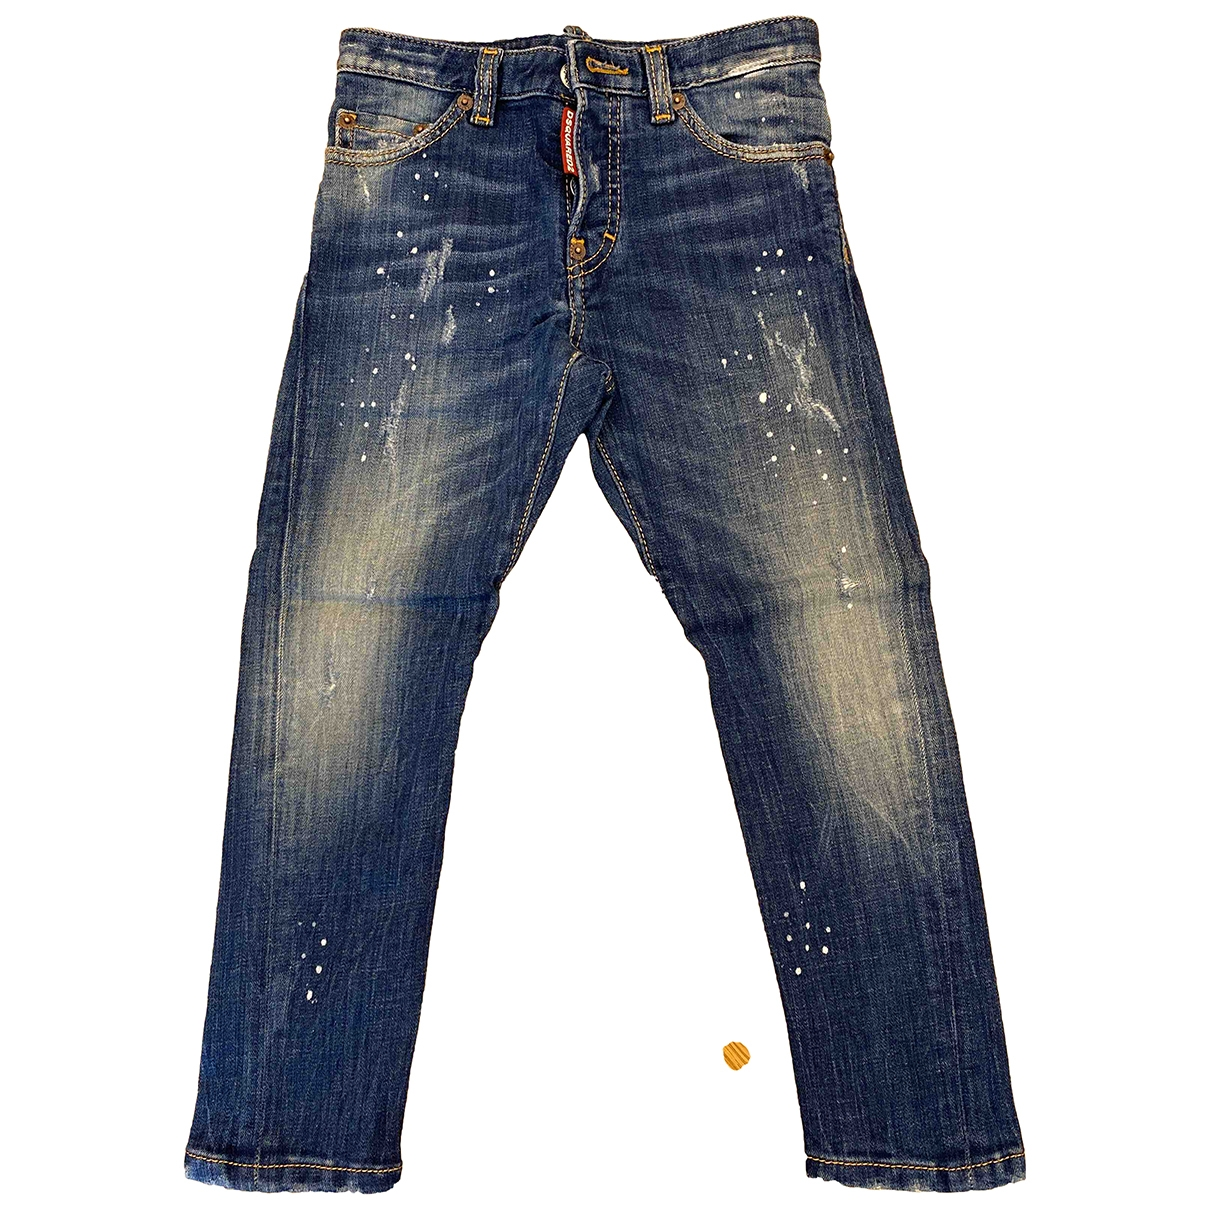 Dsquared2 \N Blue Denim - Jeans Trousers for Kids 6 years - until 45 inches UK